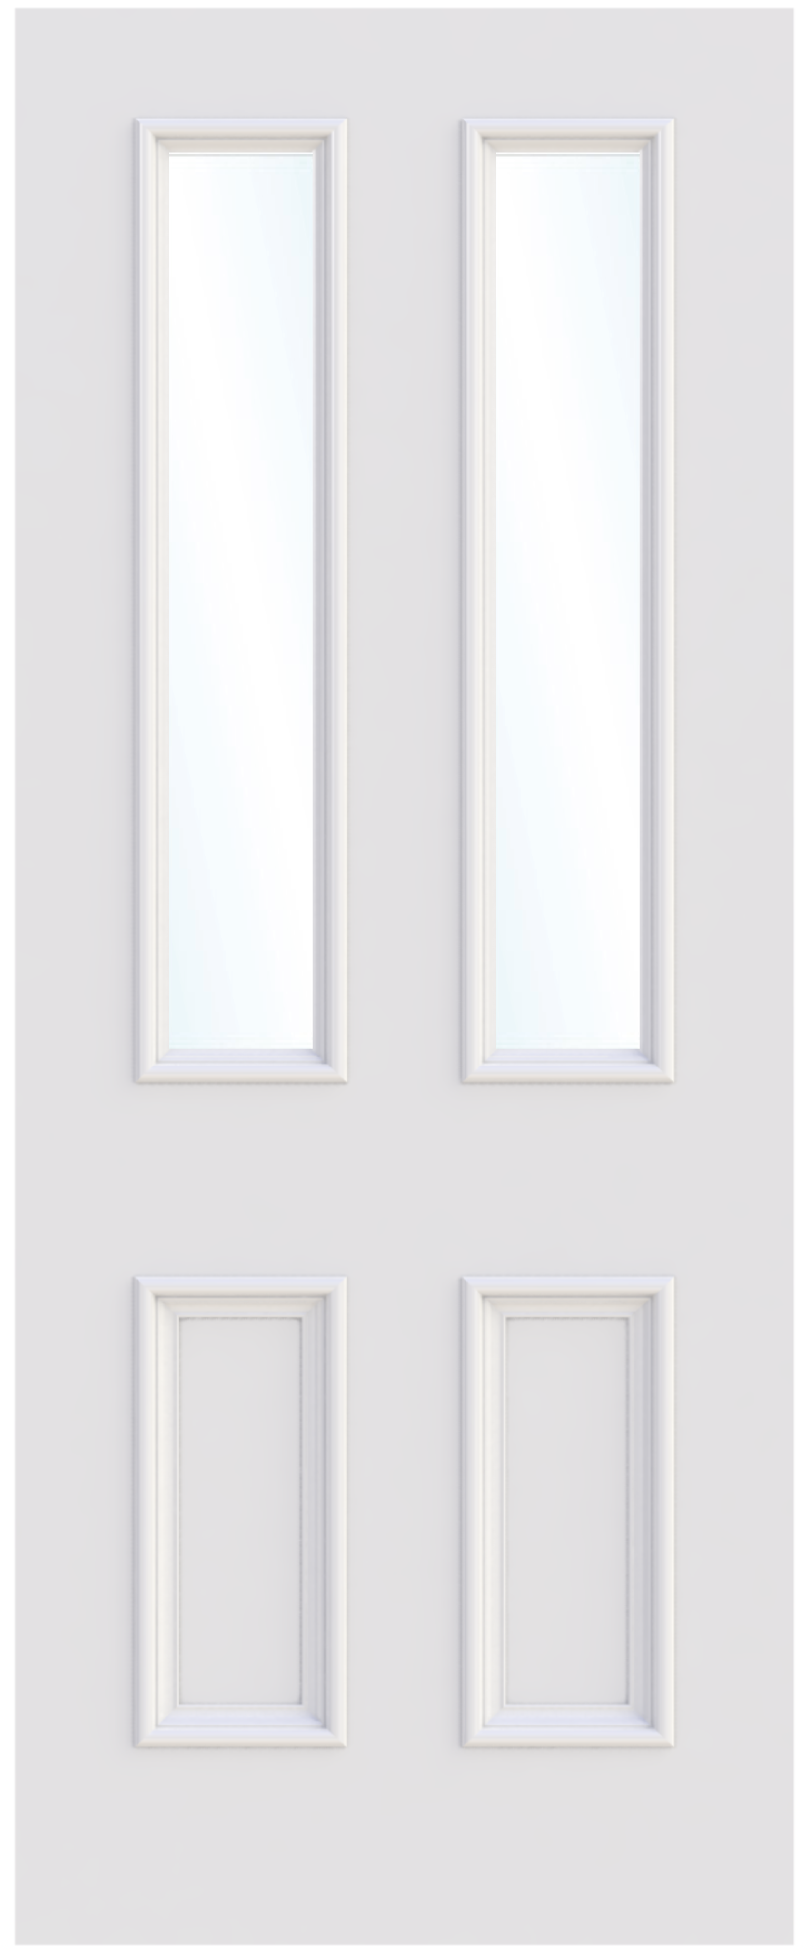 The Birmingham Single Glass Door